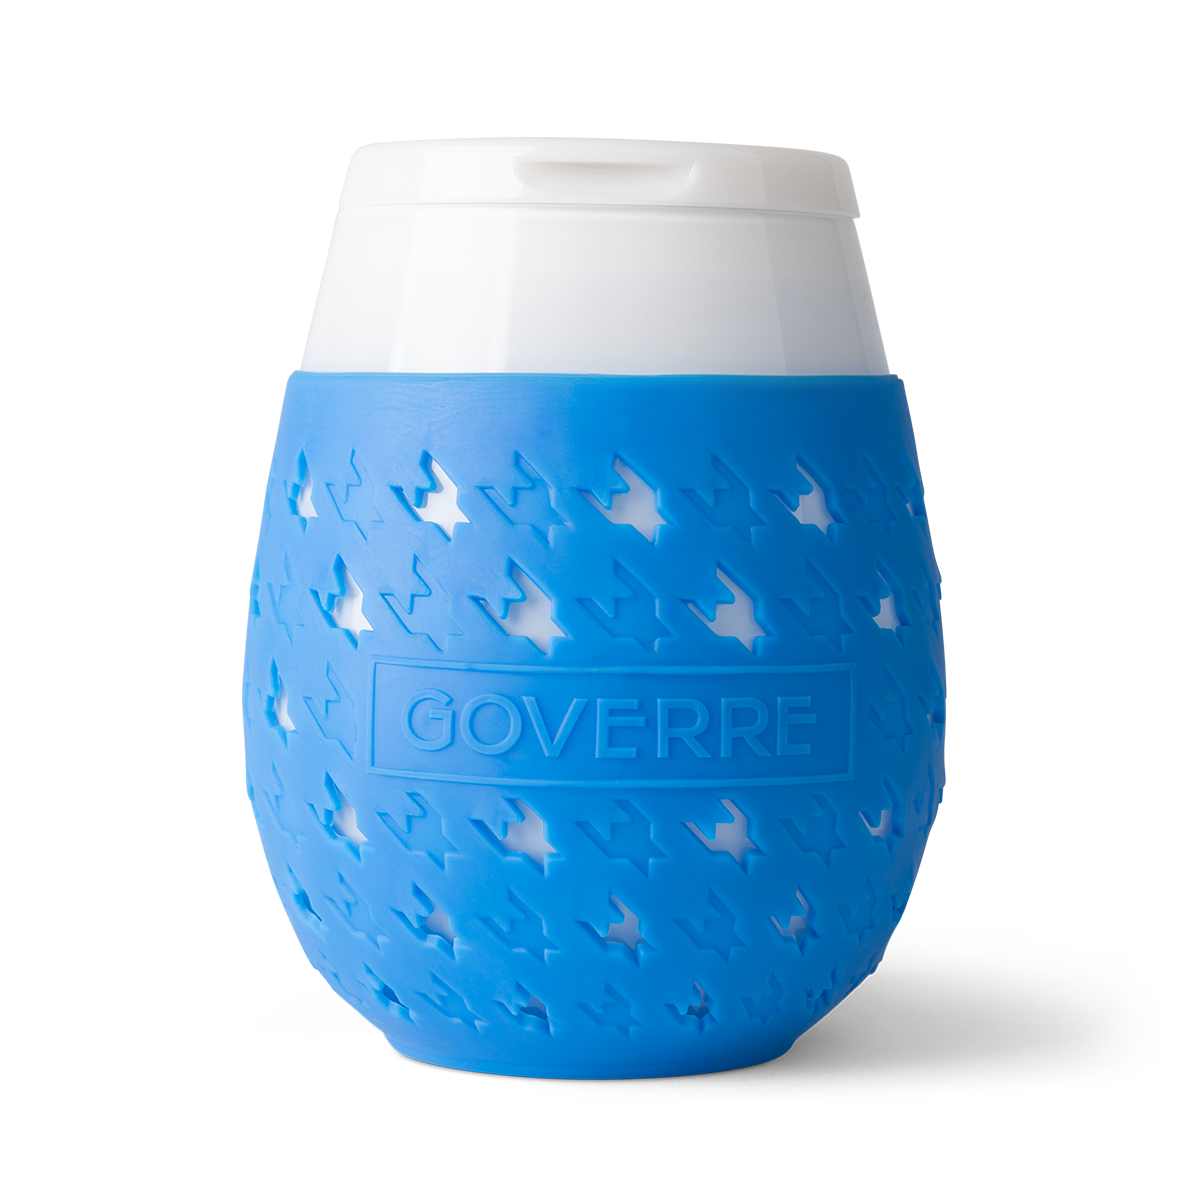 Goverre Portable Wine Glass (Blue)